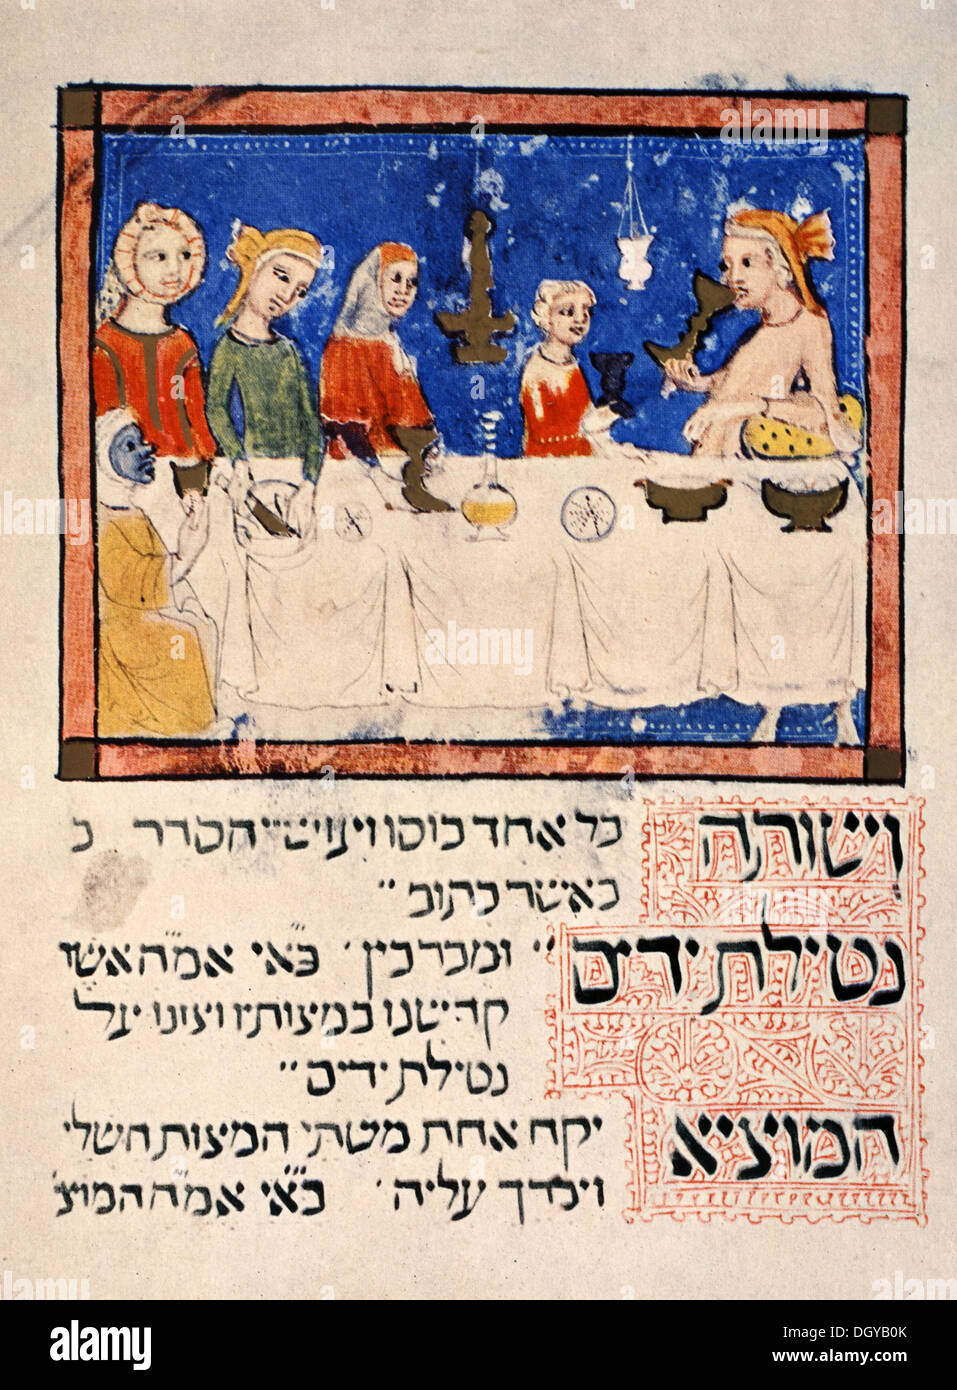 Family at the traditional Passover Seder meal. Illustration from the Sarajevo Hagada, a 14th. C. Hebrew illuminated manuscript from Spain - Stock Image